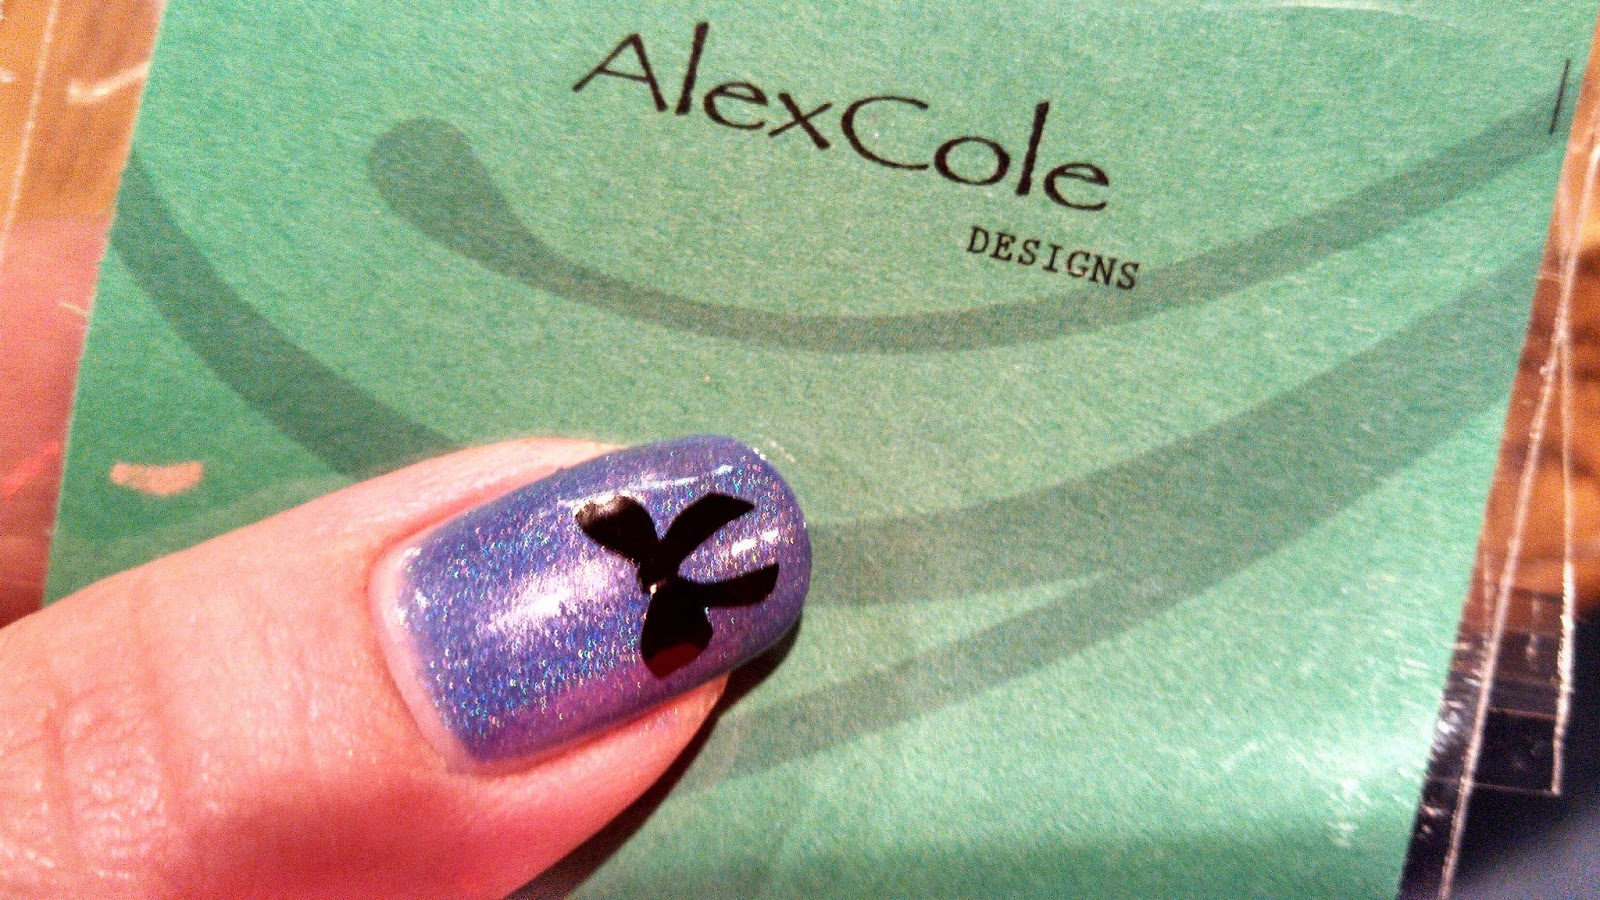 Enchanting Cosmetics Alex Cole Designs Review Of Nail Decals And